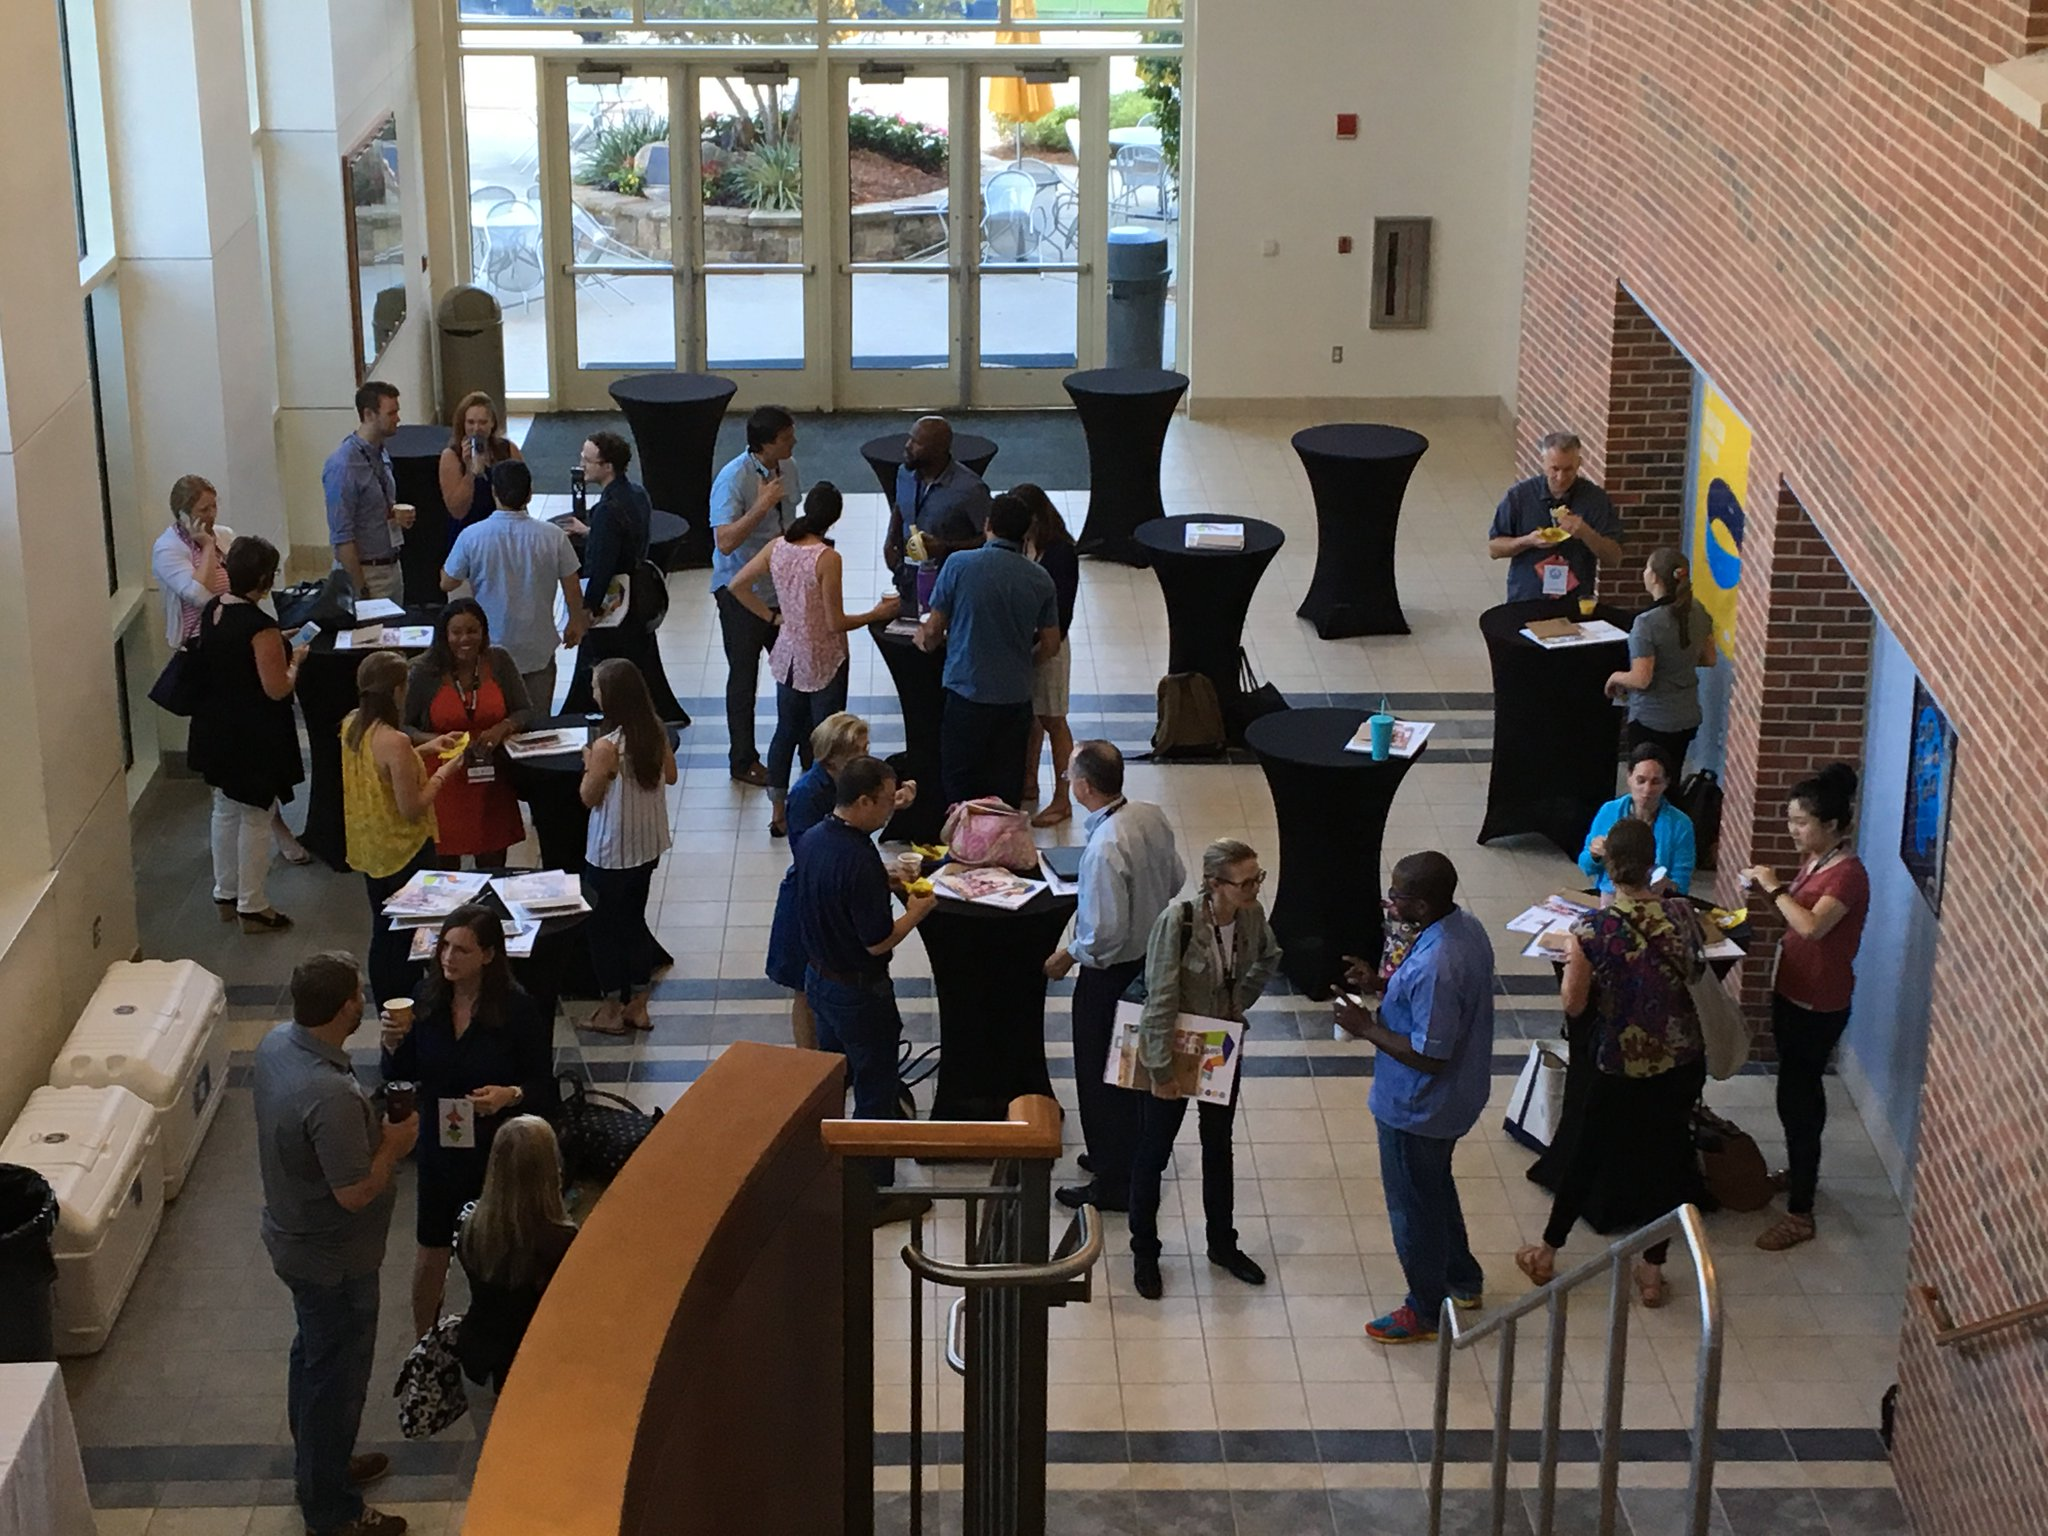 The #fuse17 crowd starts to gather this morning for 3-day immersive in #designthinking https://t.co/xcmpai7VIl